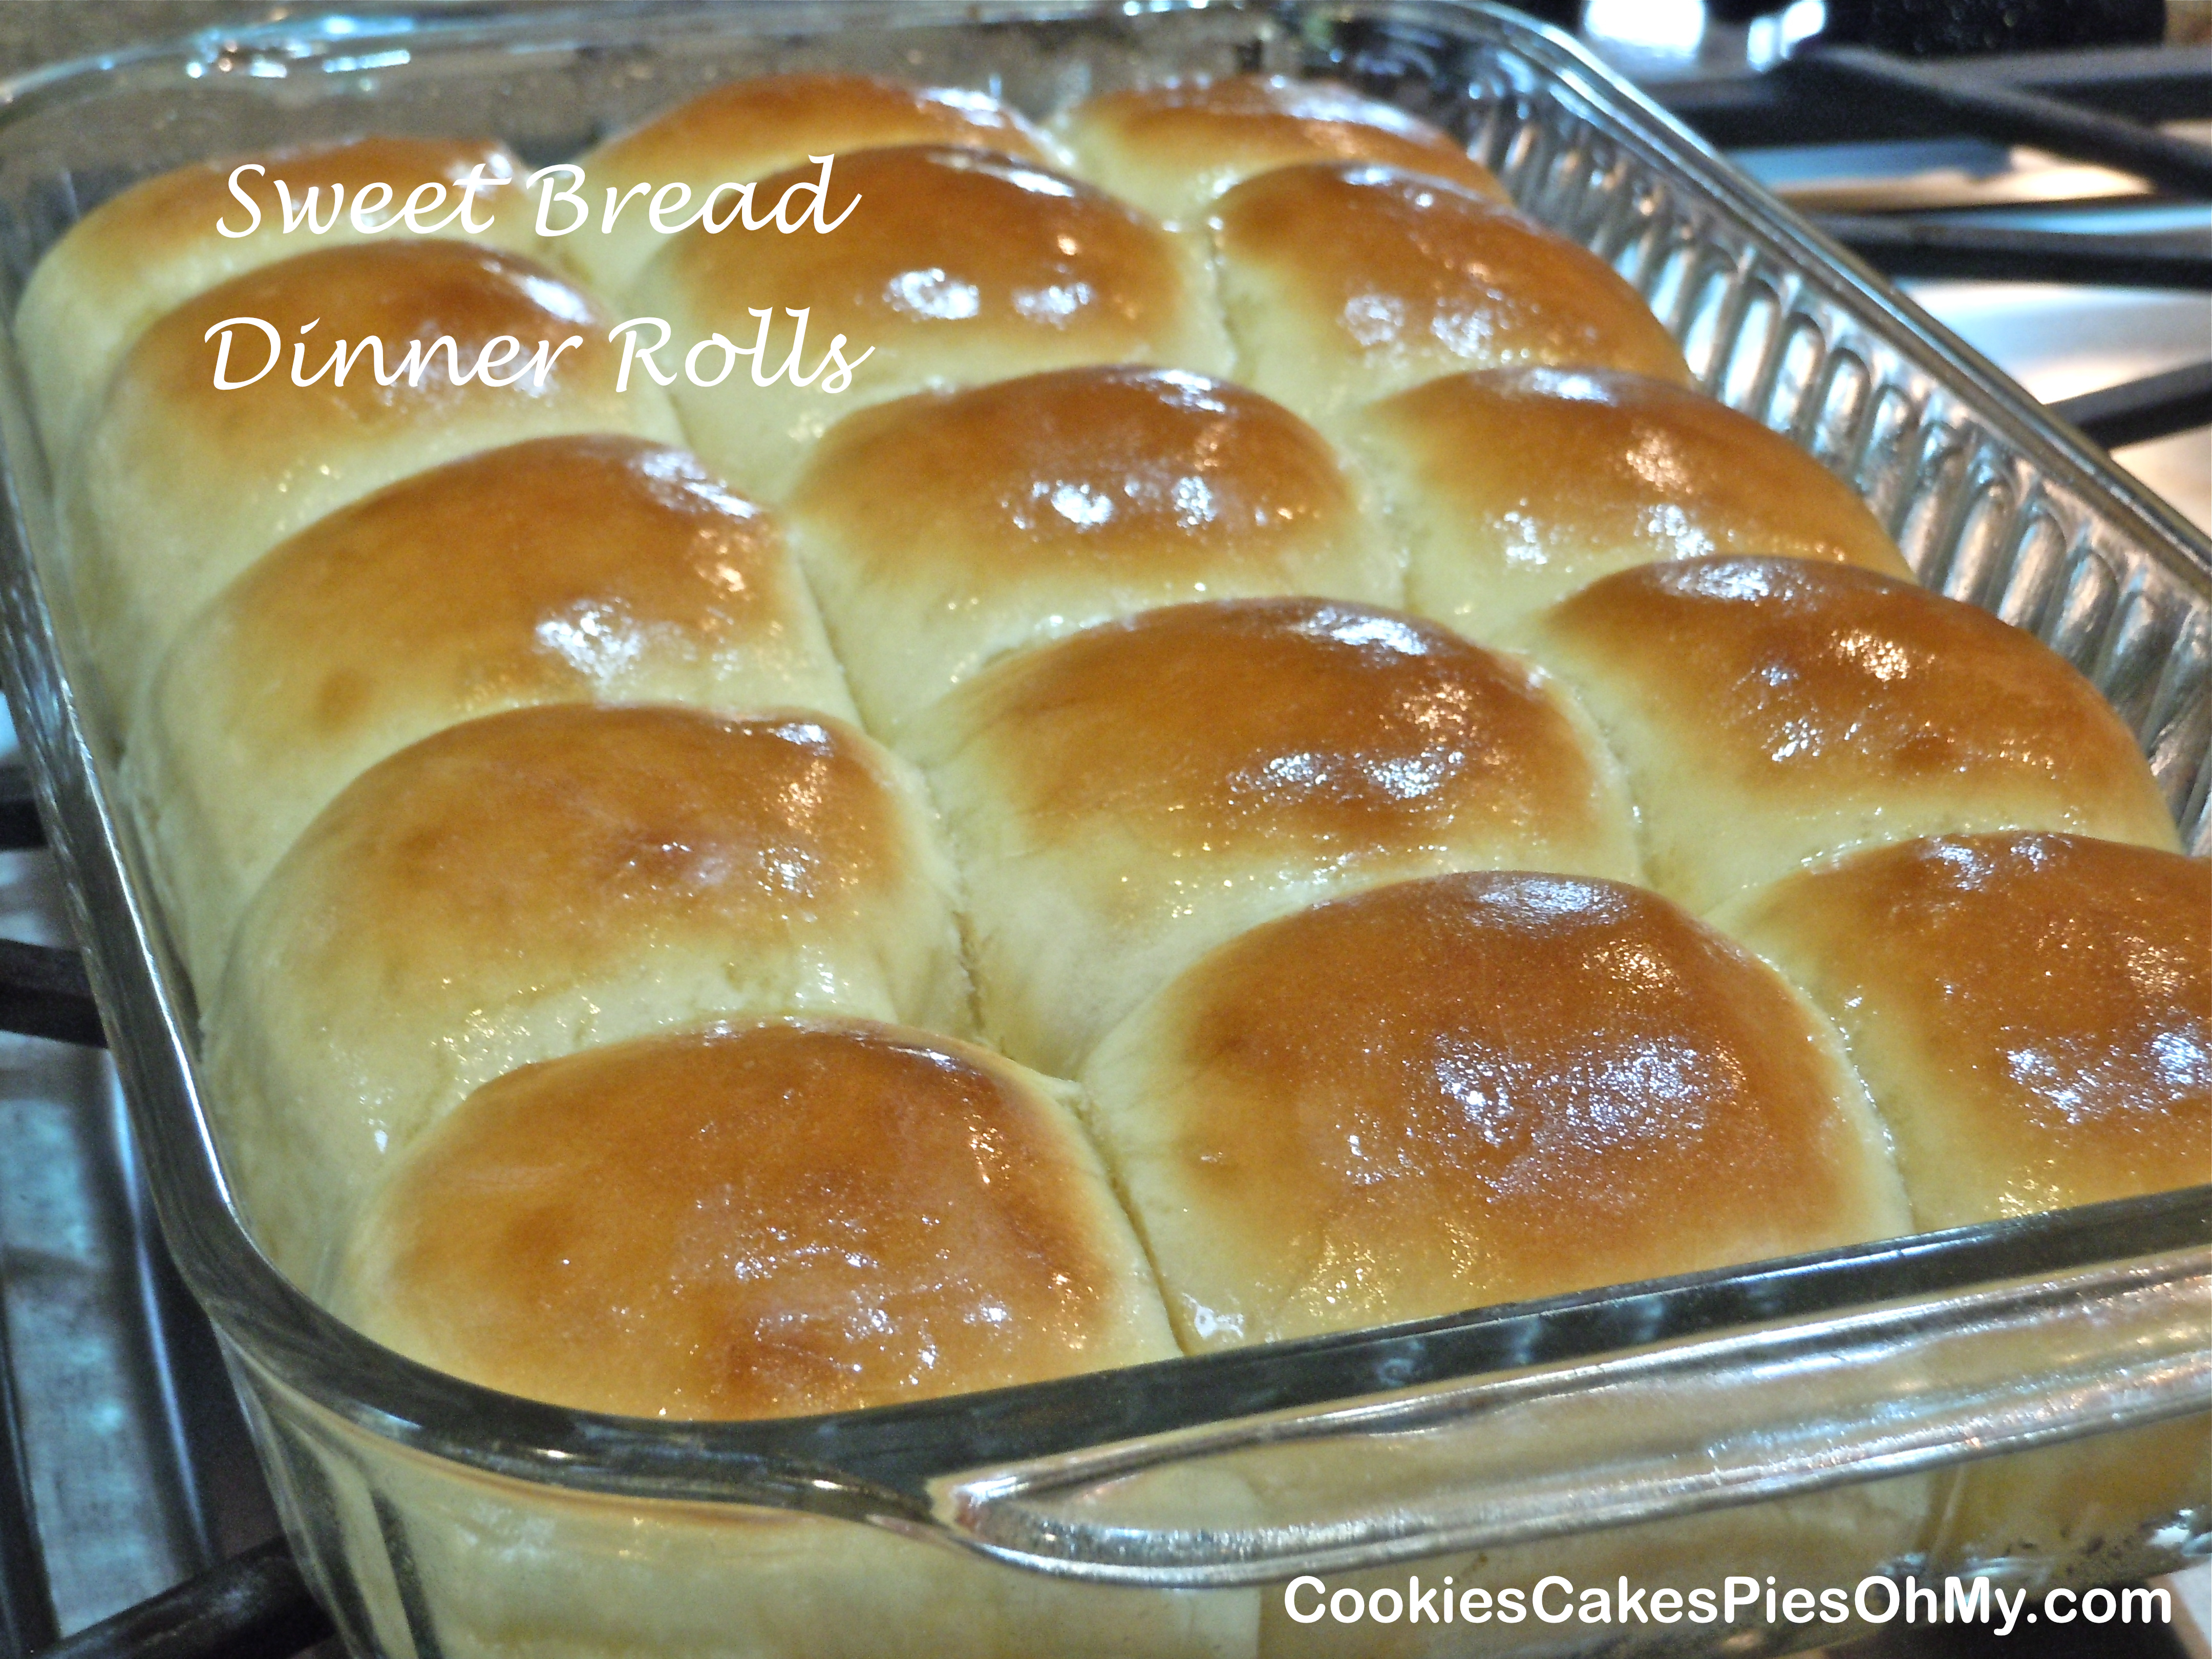 How To Make Dinner Rolls With Cake Mix